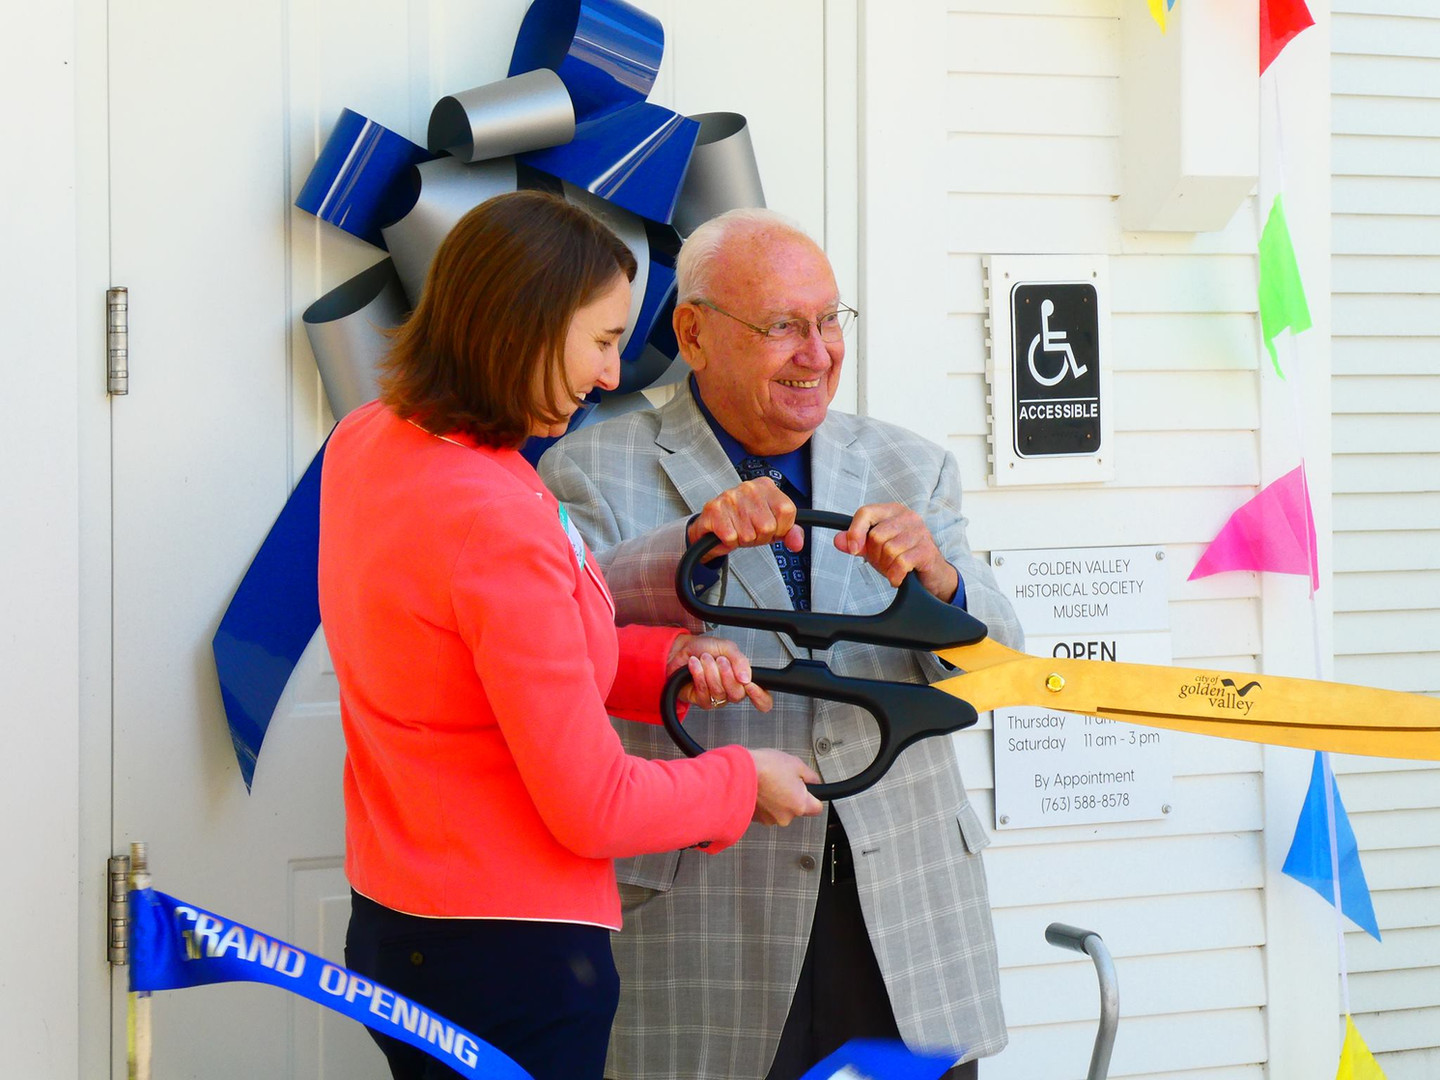 Official Opening of the GVHS Museum